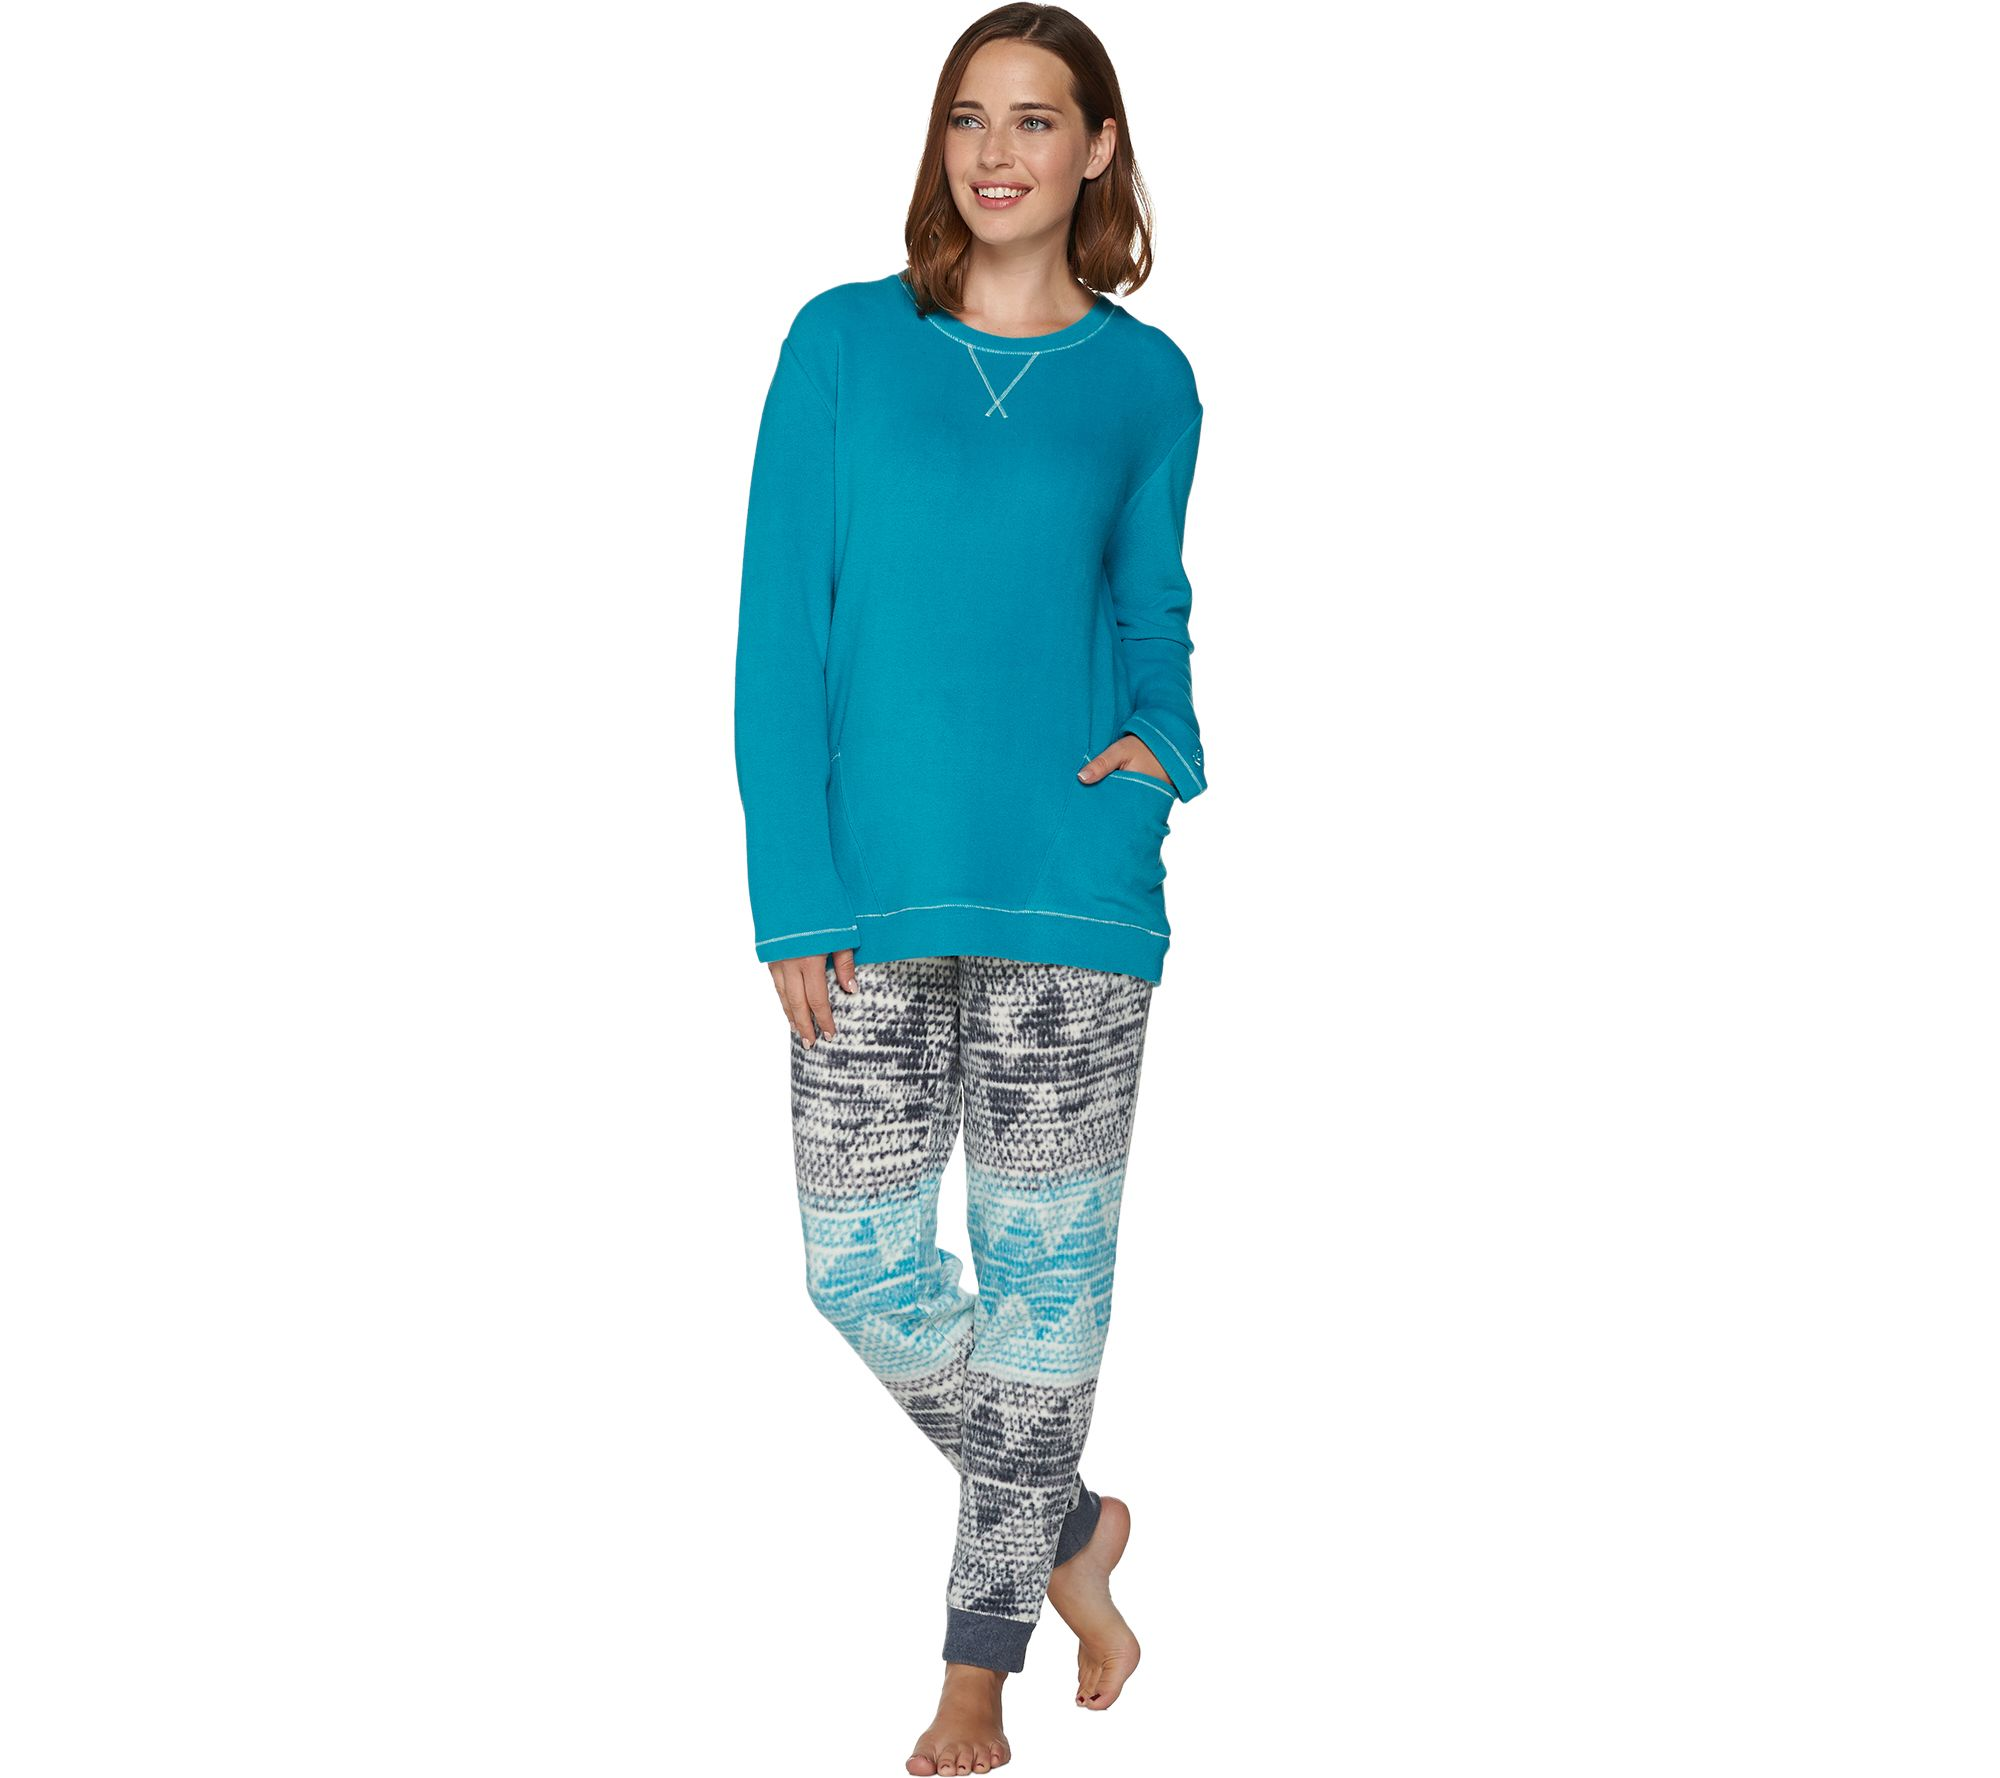 Shop Cuddl Duds Womens Clothing on sale at hereifilessl.ga and find the best styles and deals right now! Free shipping available and free pickup in-store!